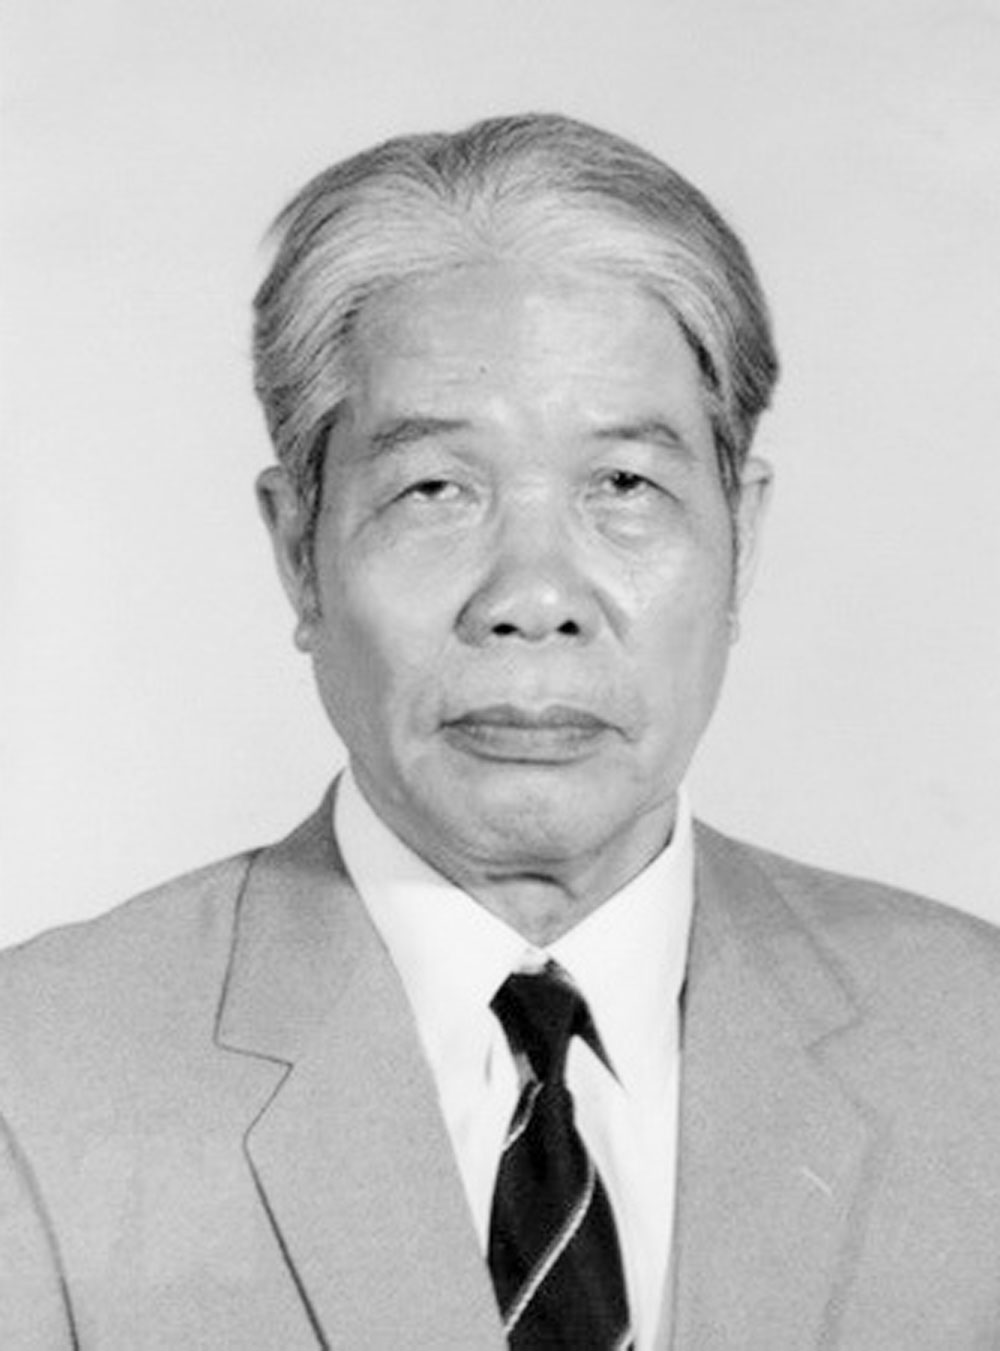 Former Party General Secretary, Do Muoi, passes away, Communist Party, serious illness, Healthcare Services, Senior Officials, revolutionary activities, great contributions